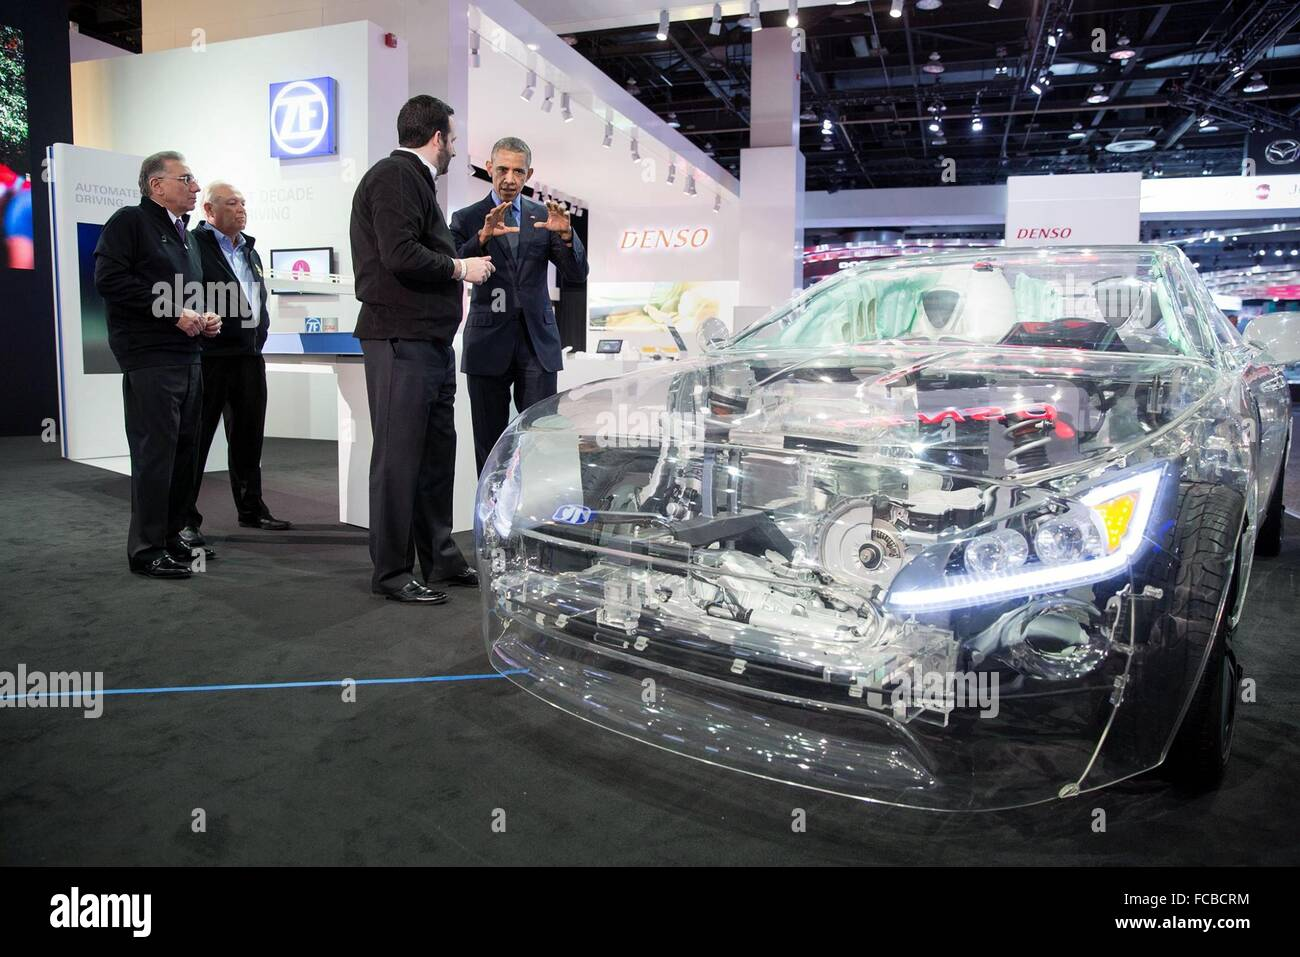 Components Car Stockfotos & Components Car Bilder - Alamy